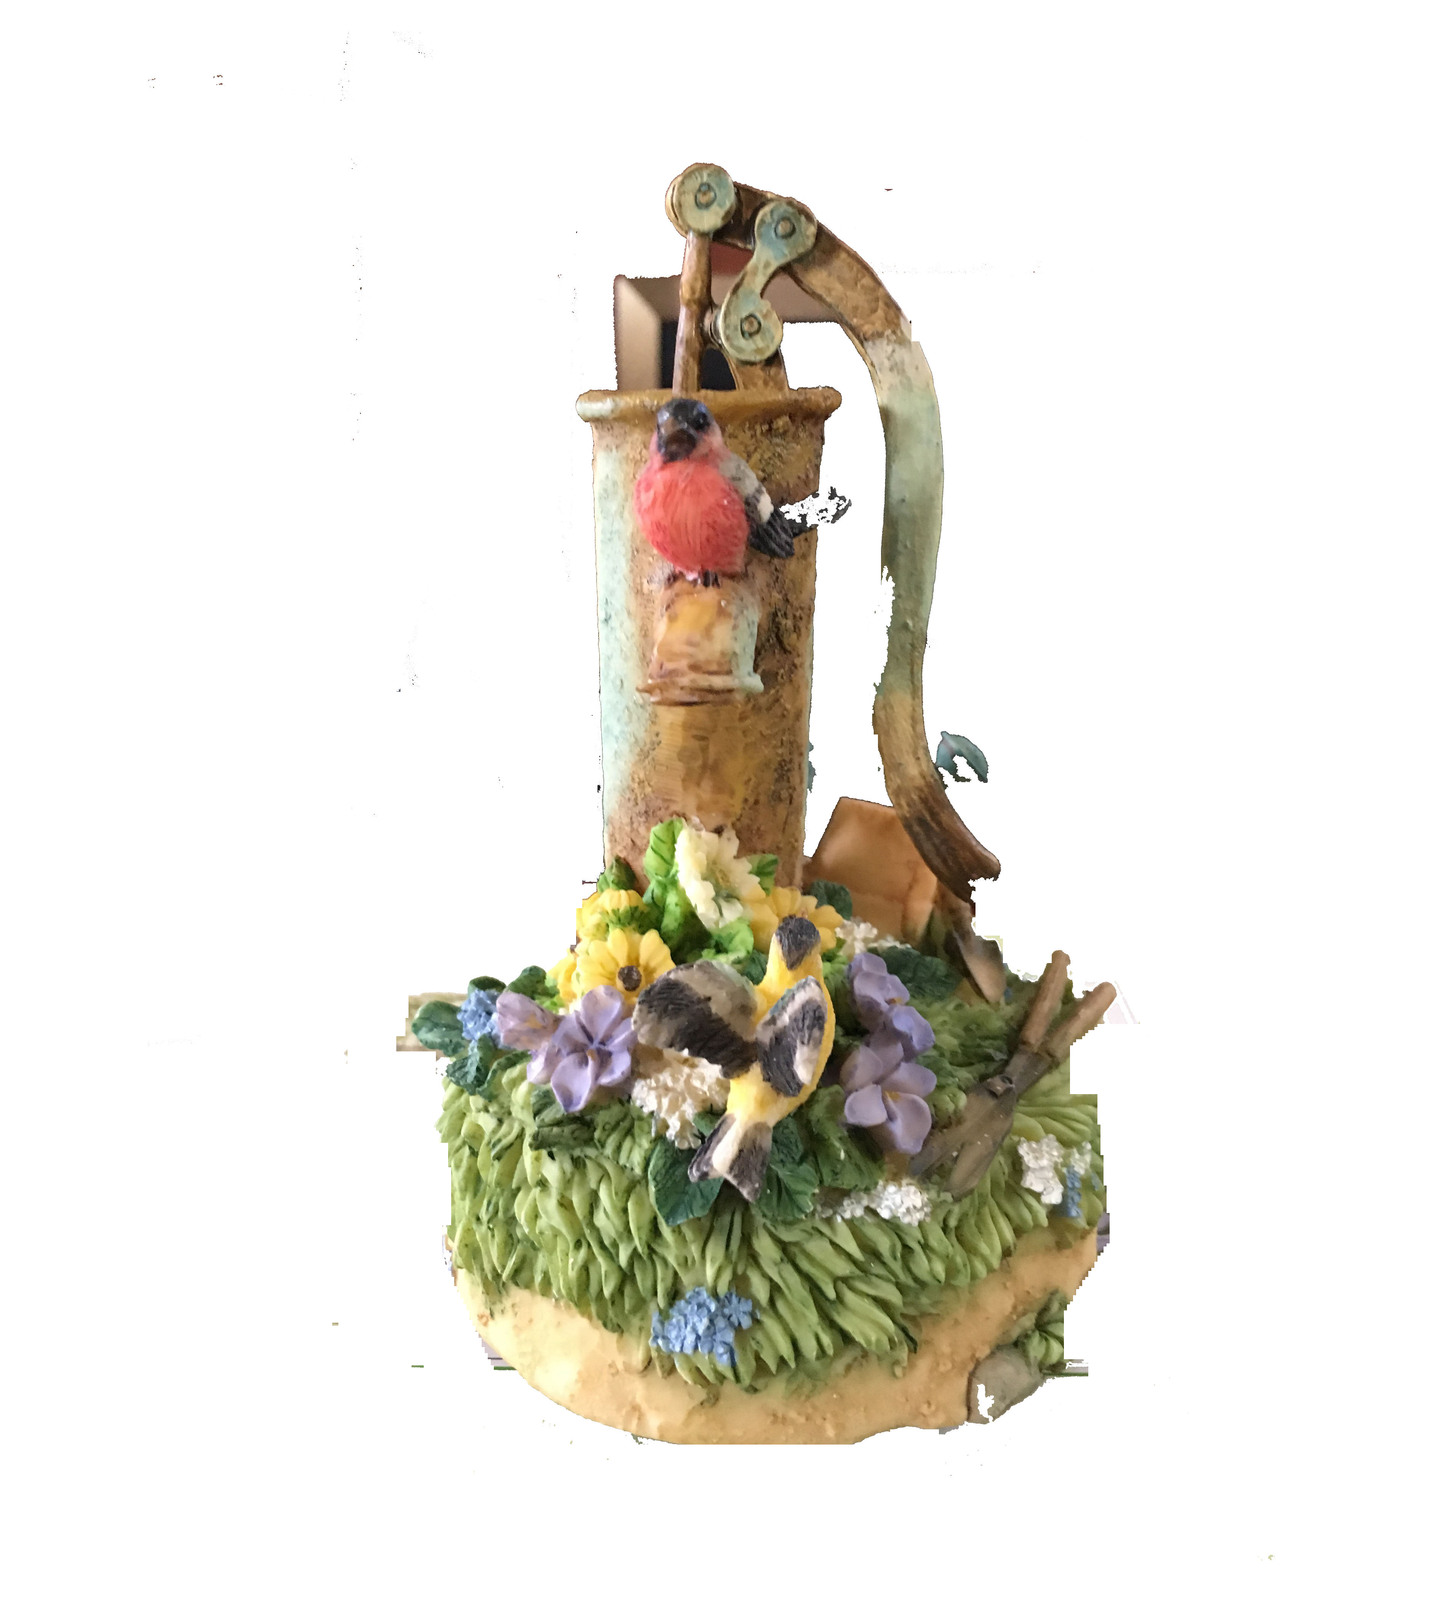 Primary image for DECORATIVE CERAMIC GARDEN MANUAL WATER PUMP, ADORNED WITH ROSES